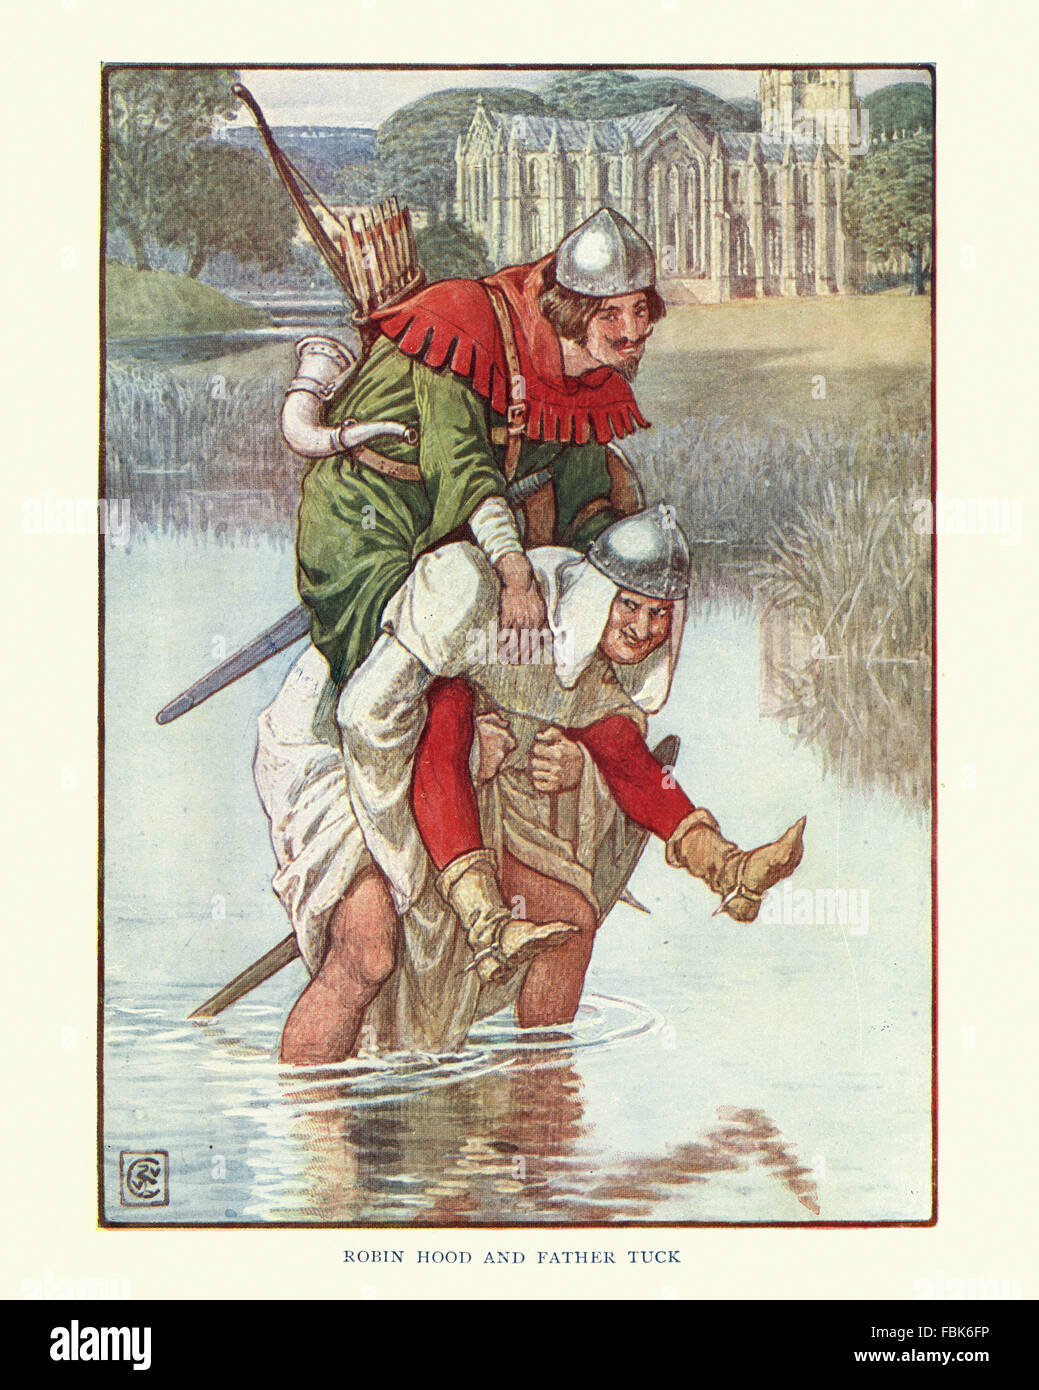 Illustration from the story of Robin Hood. Friar Tuck carrying Robin Hood on his back. By Walter Crane - Stock Image